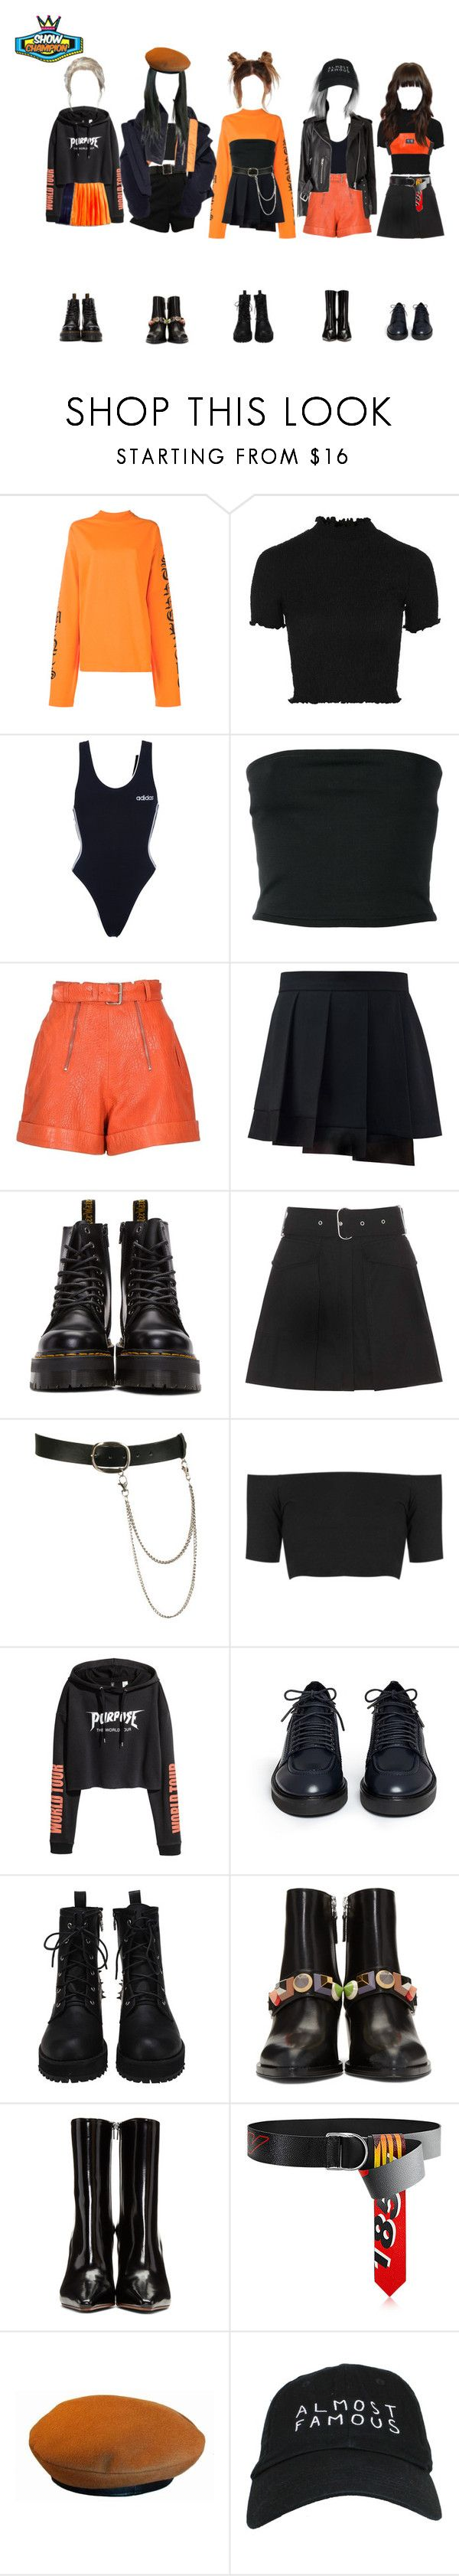 """Show Champion: 썸 (Goodbye Stage)"" by ingenueotaku ❤ liked on Polyvore featuring Vetements, Topshop, VFiles, adidas, Balmain, Carven, Dr. Martens, Acne Studios, Wet Seal and Ash"